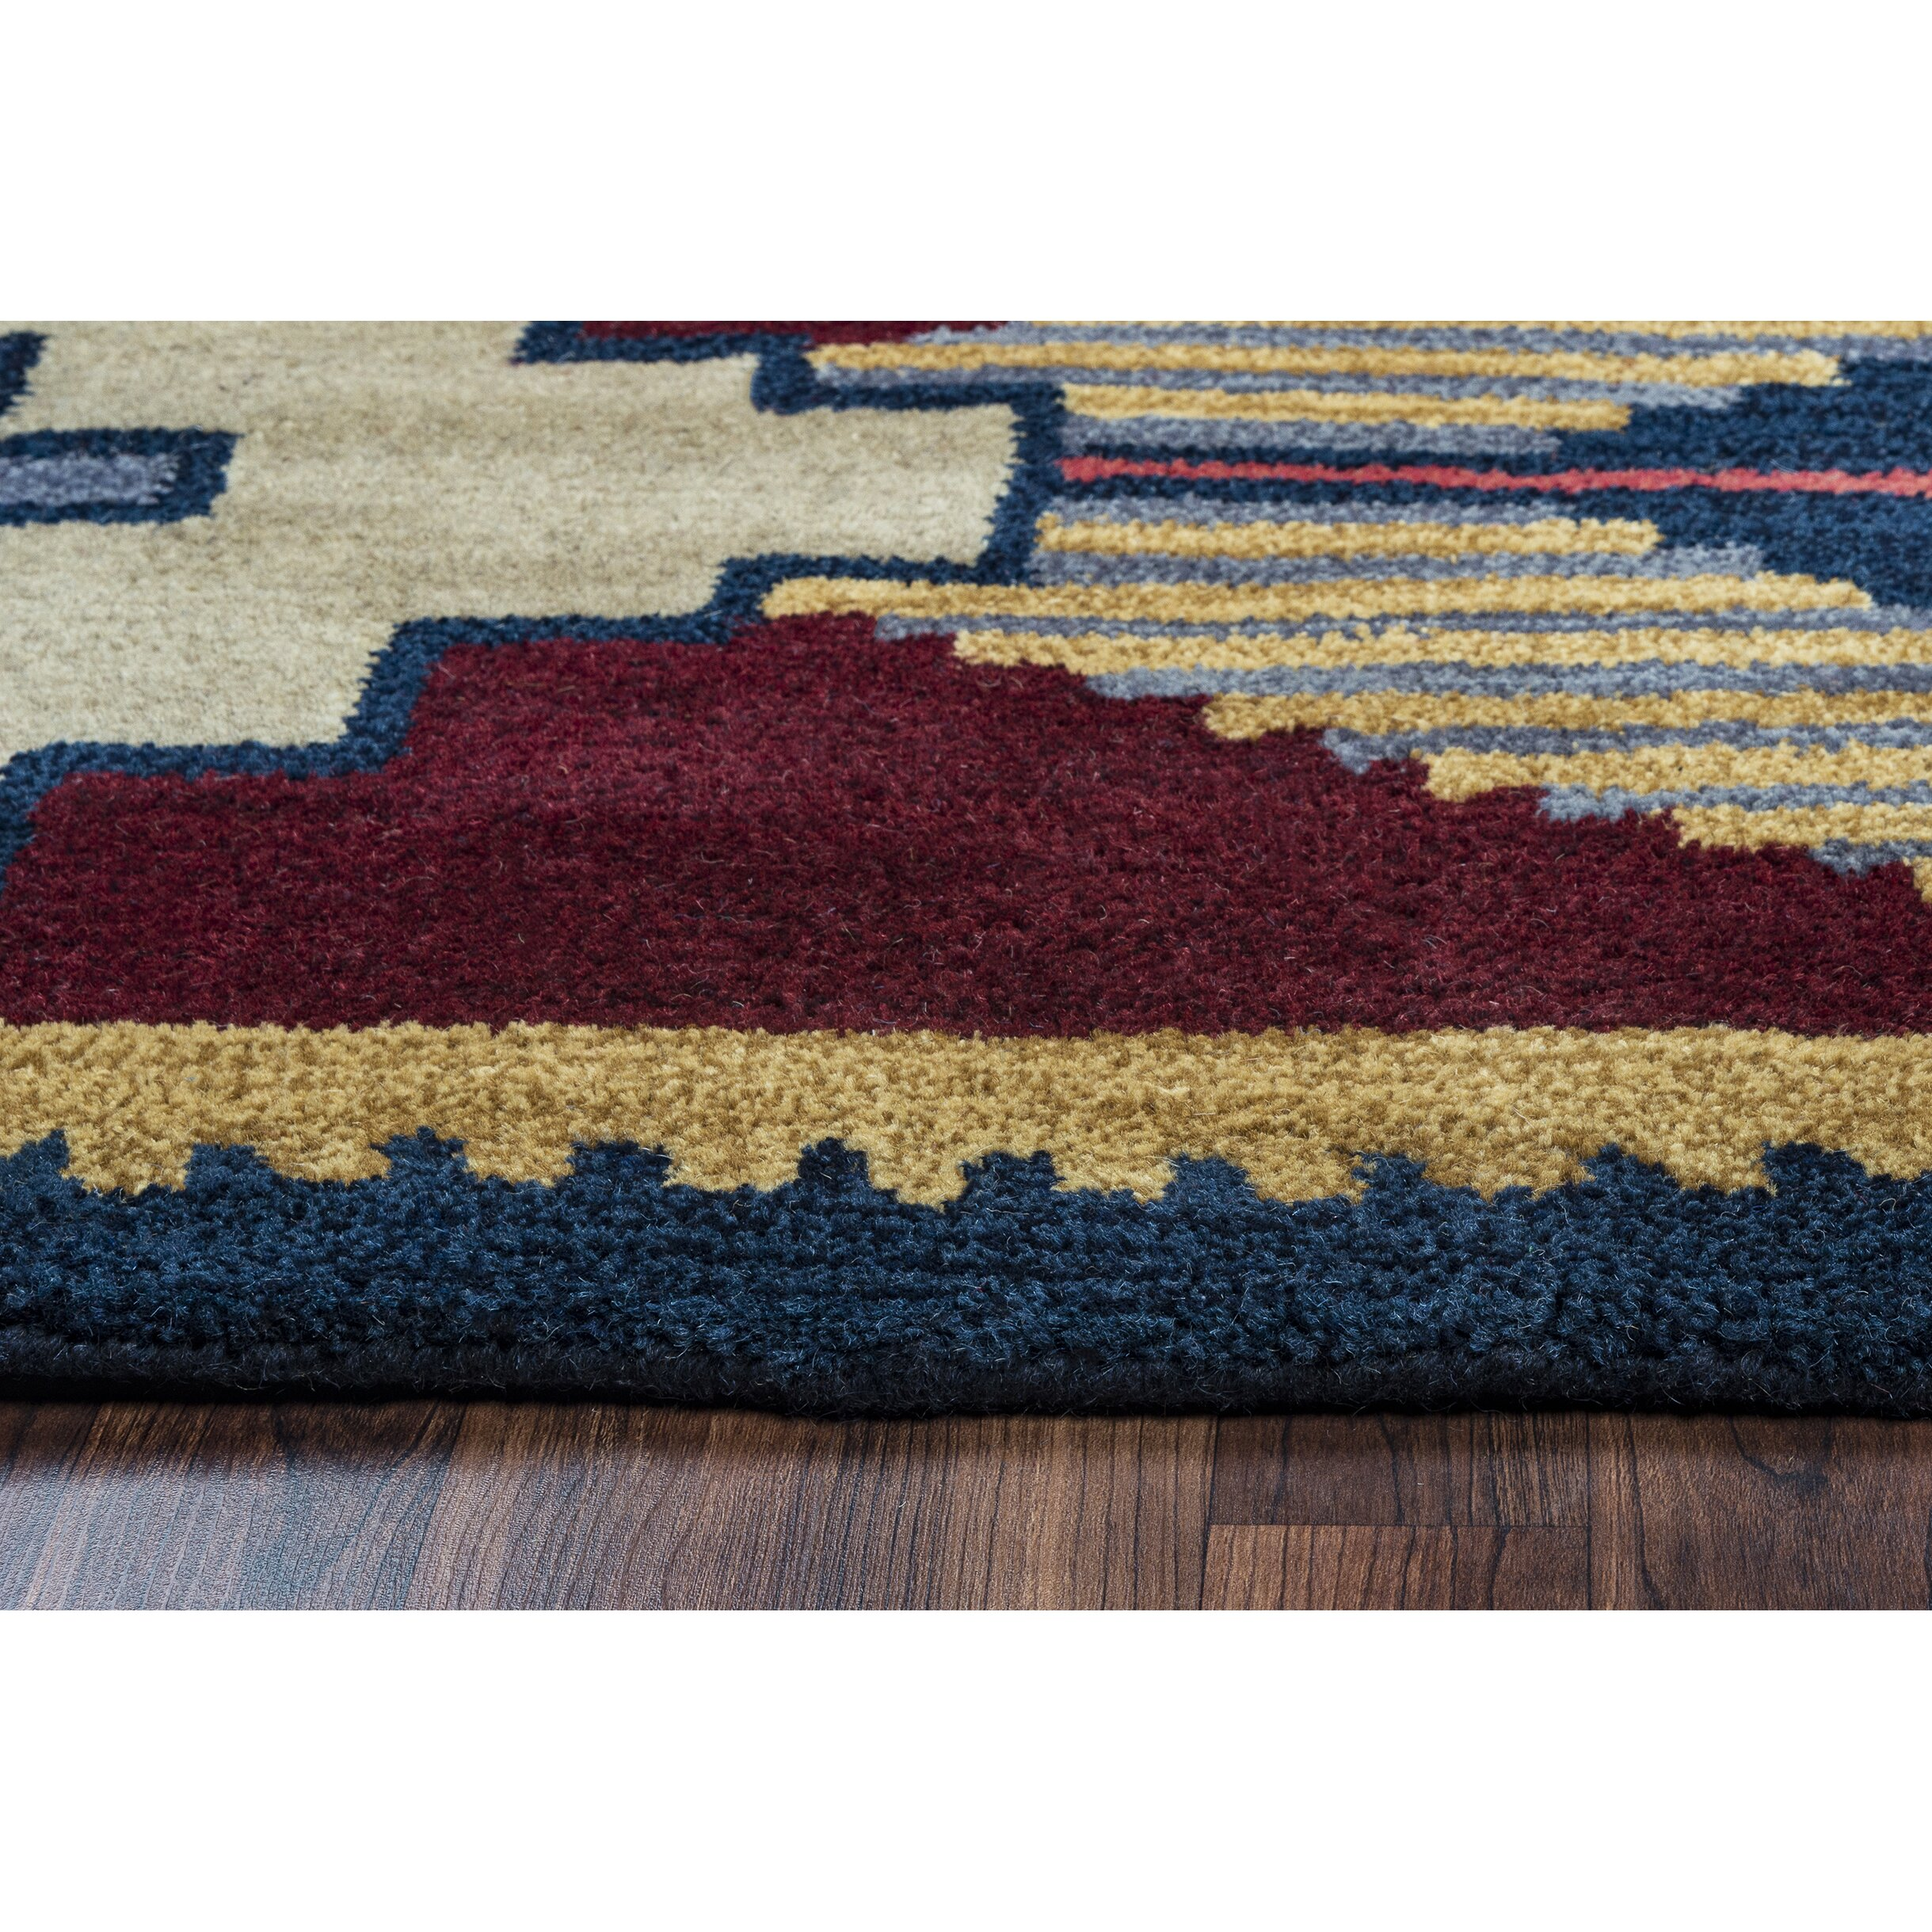 Red and blue area rug roselawnlutheran for Red and blue area rug